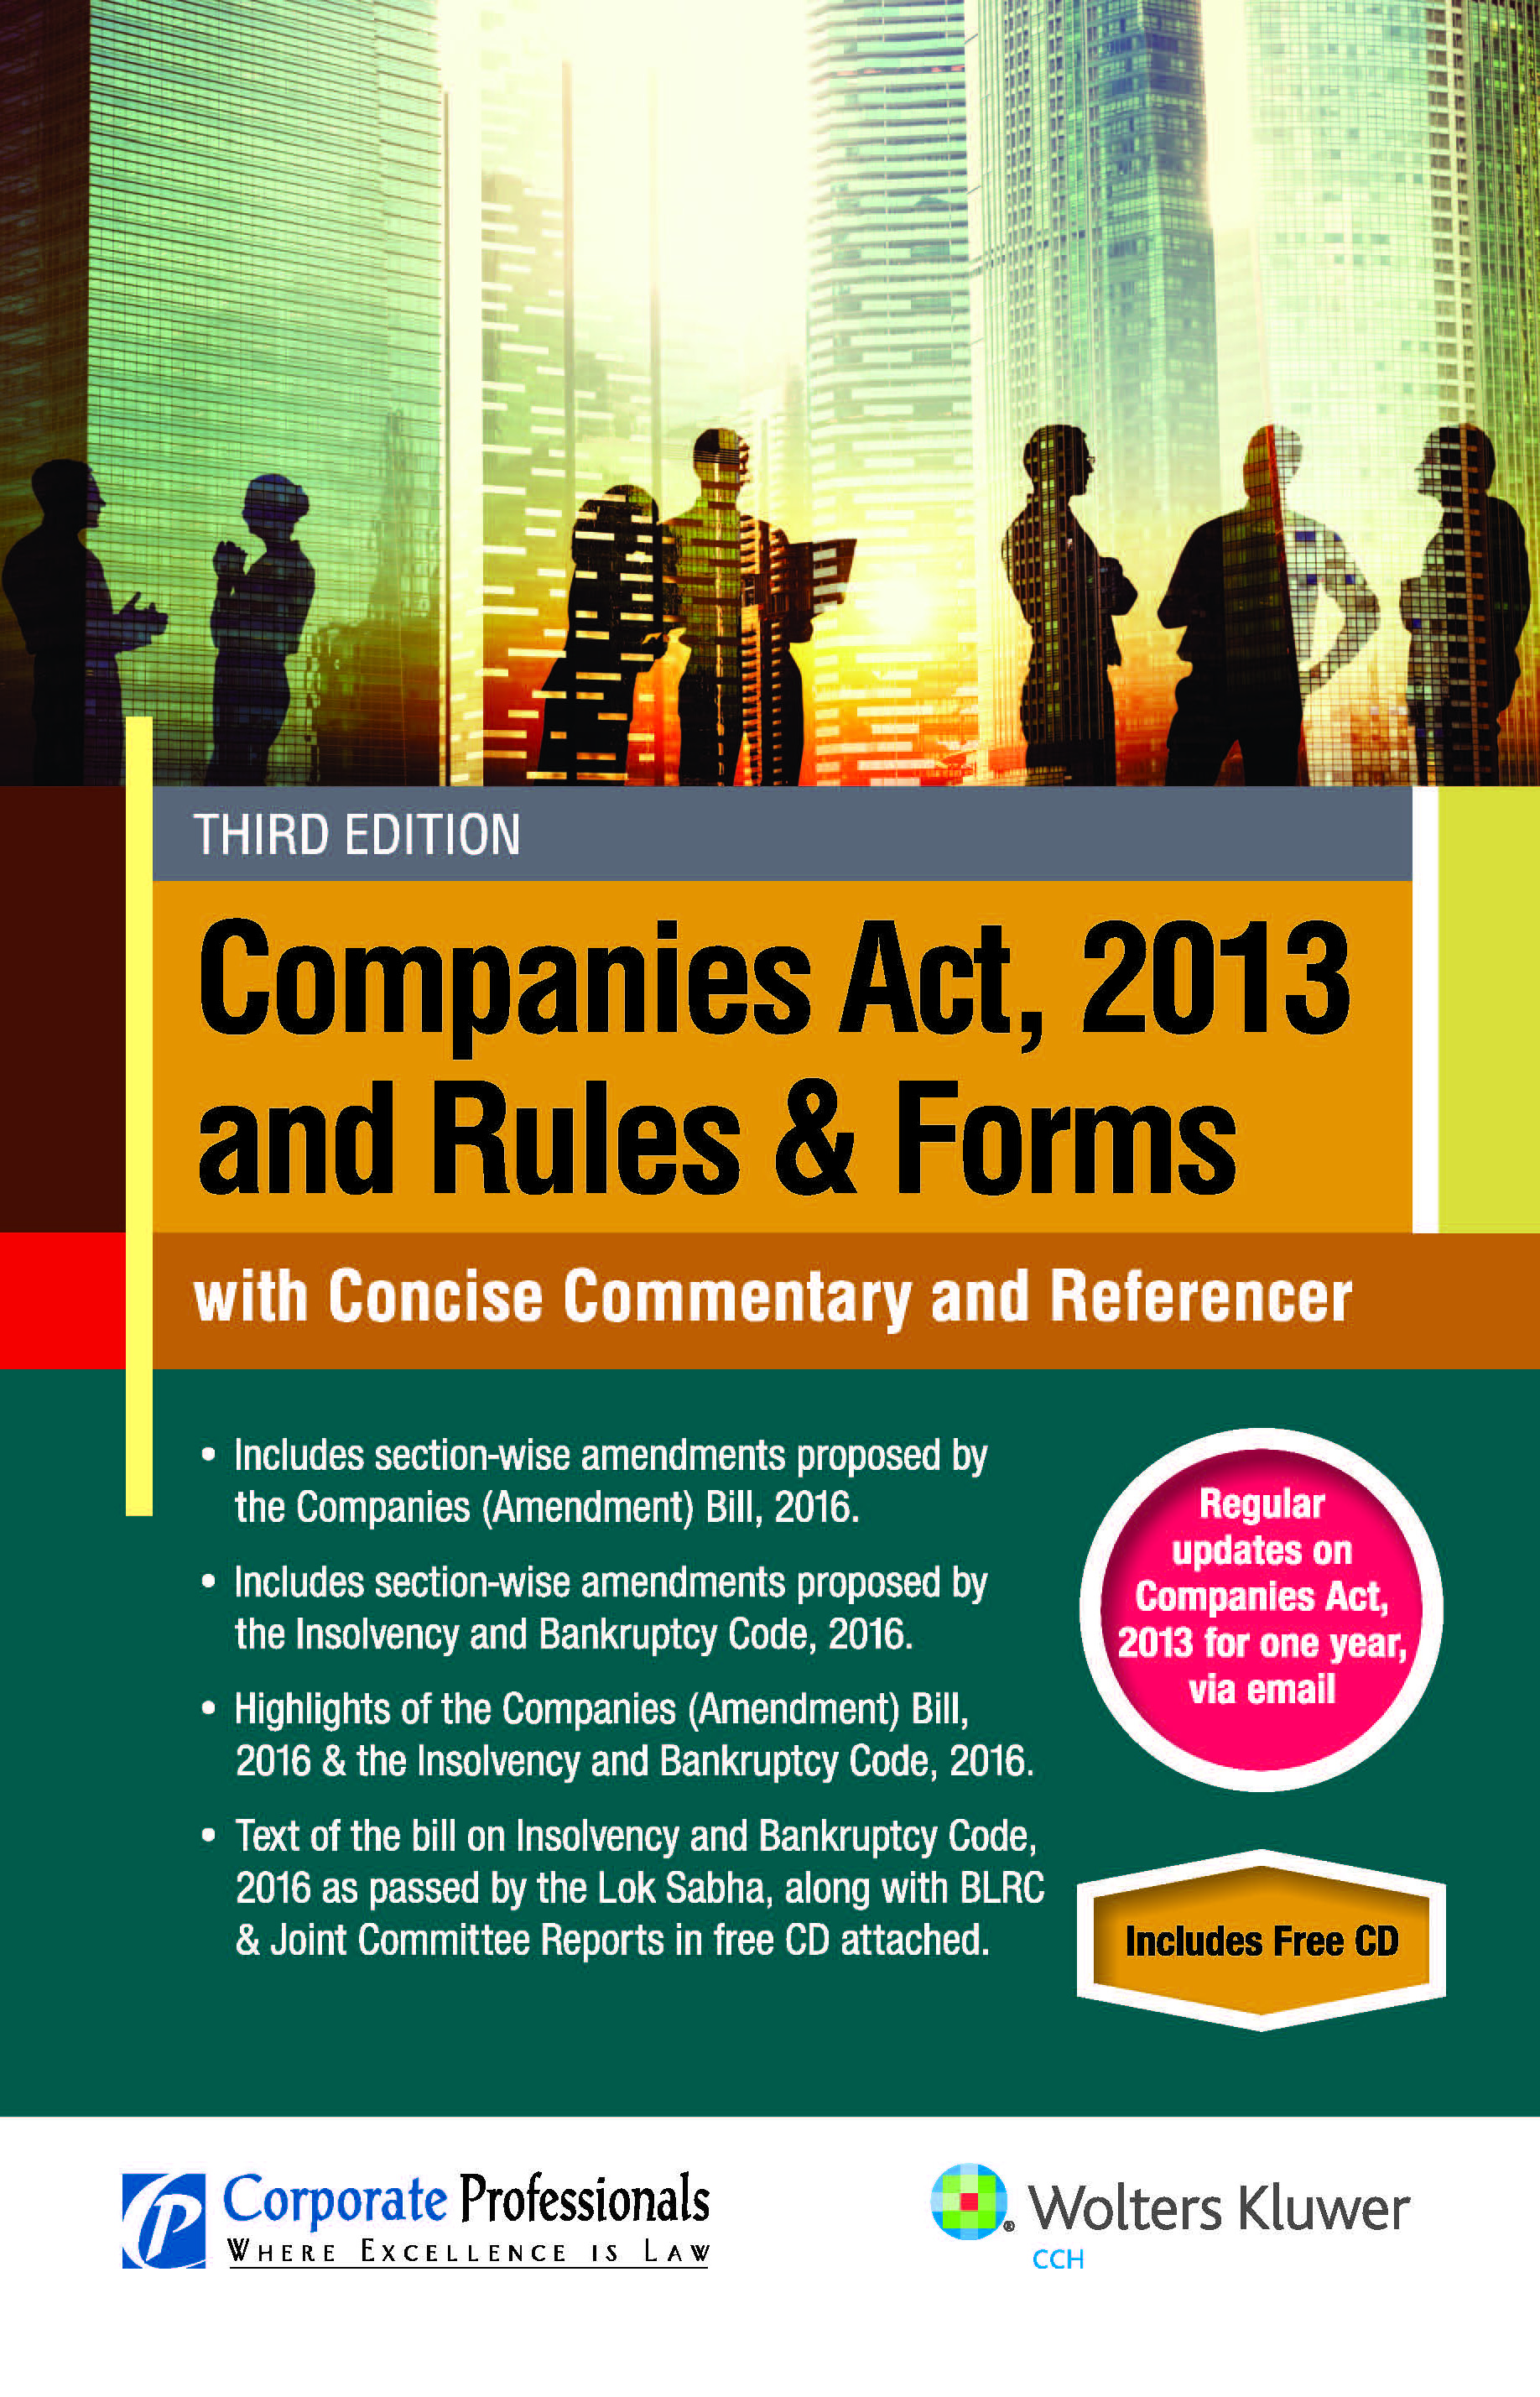 Book on Second Edition, Companies Act, 2013 and Rules & Forms